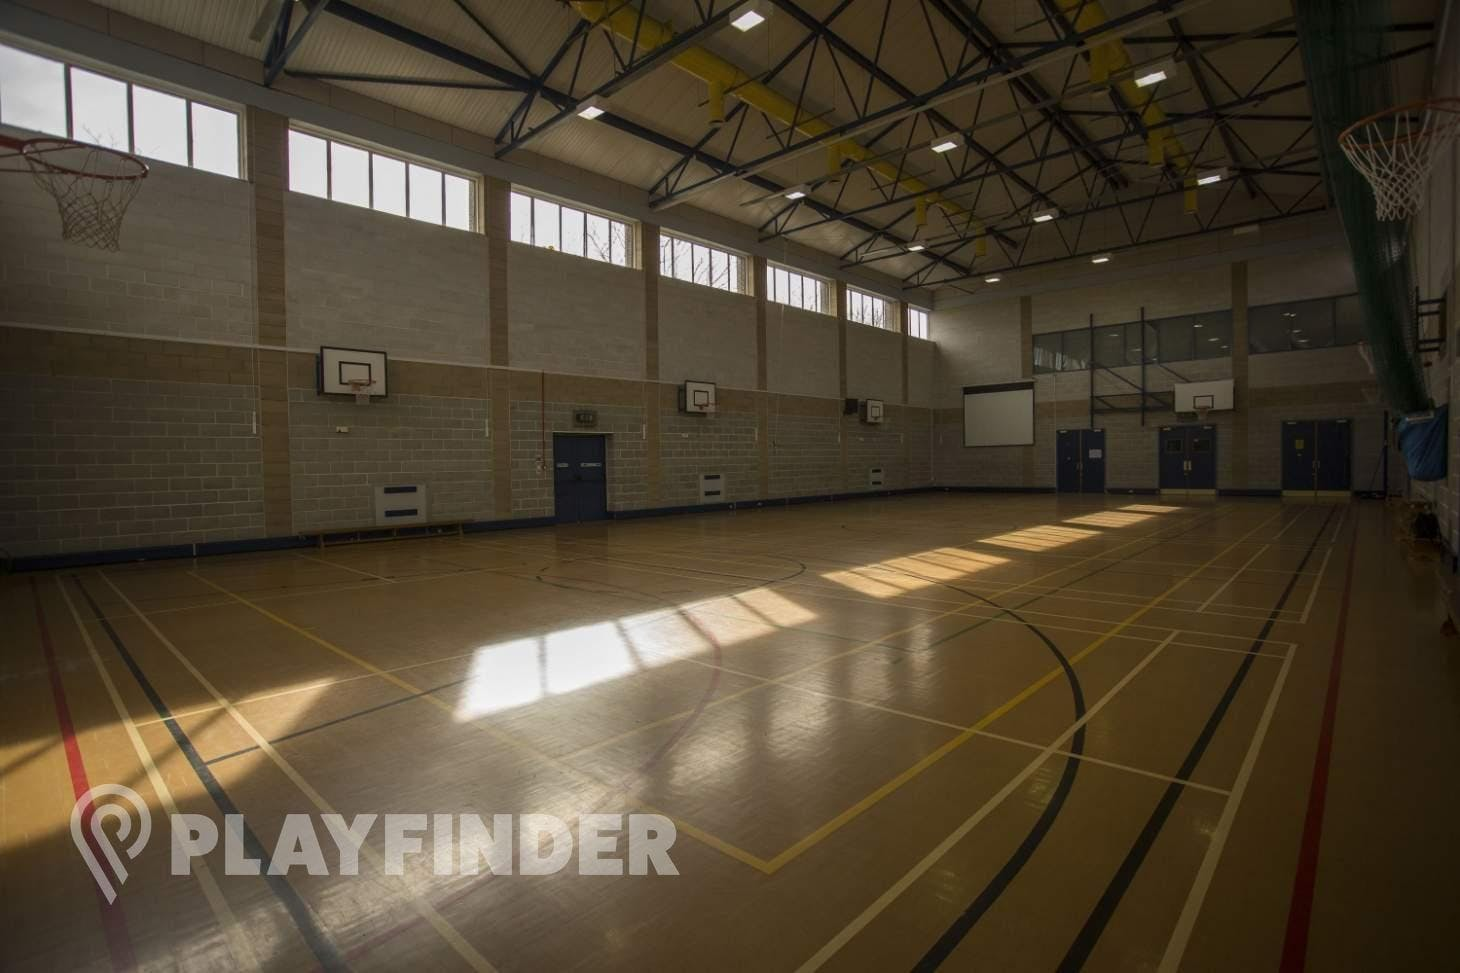 Copthall School Indoor netball court